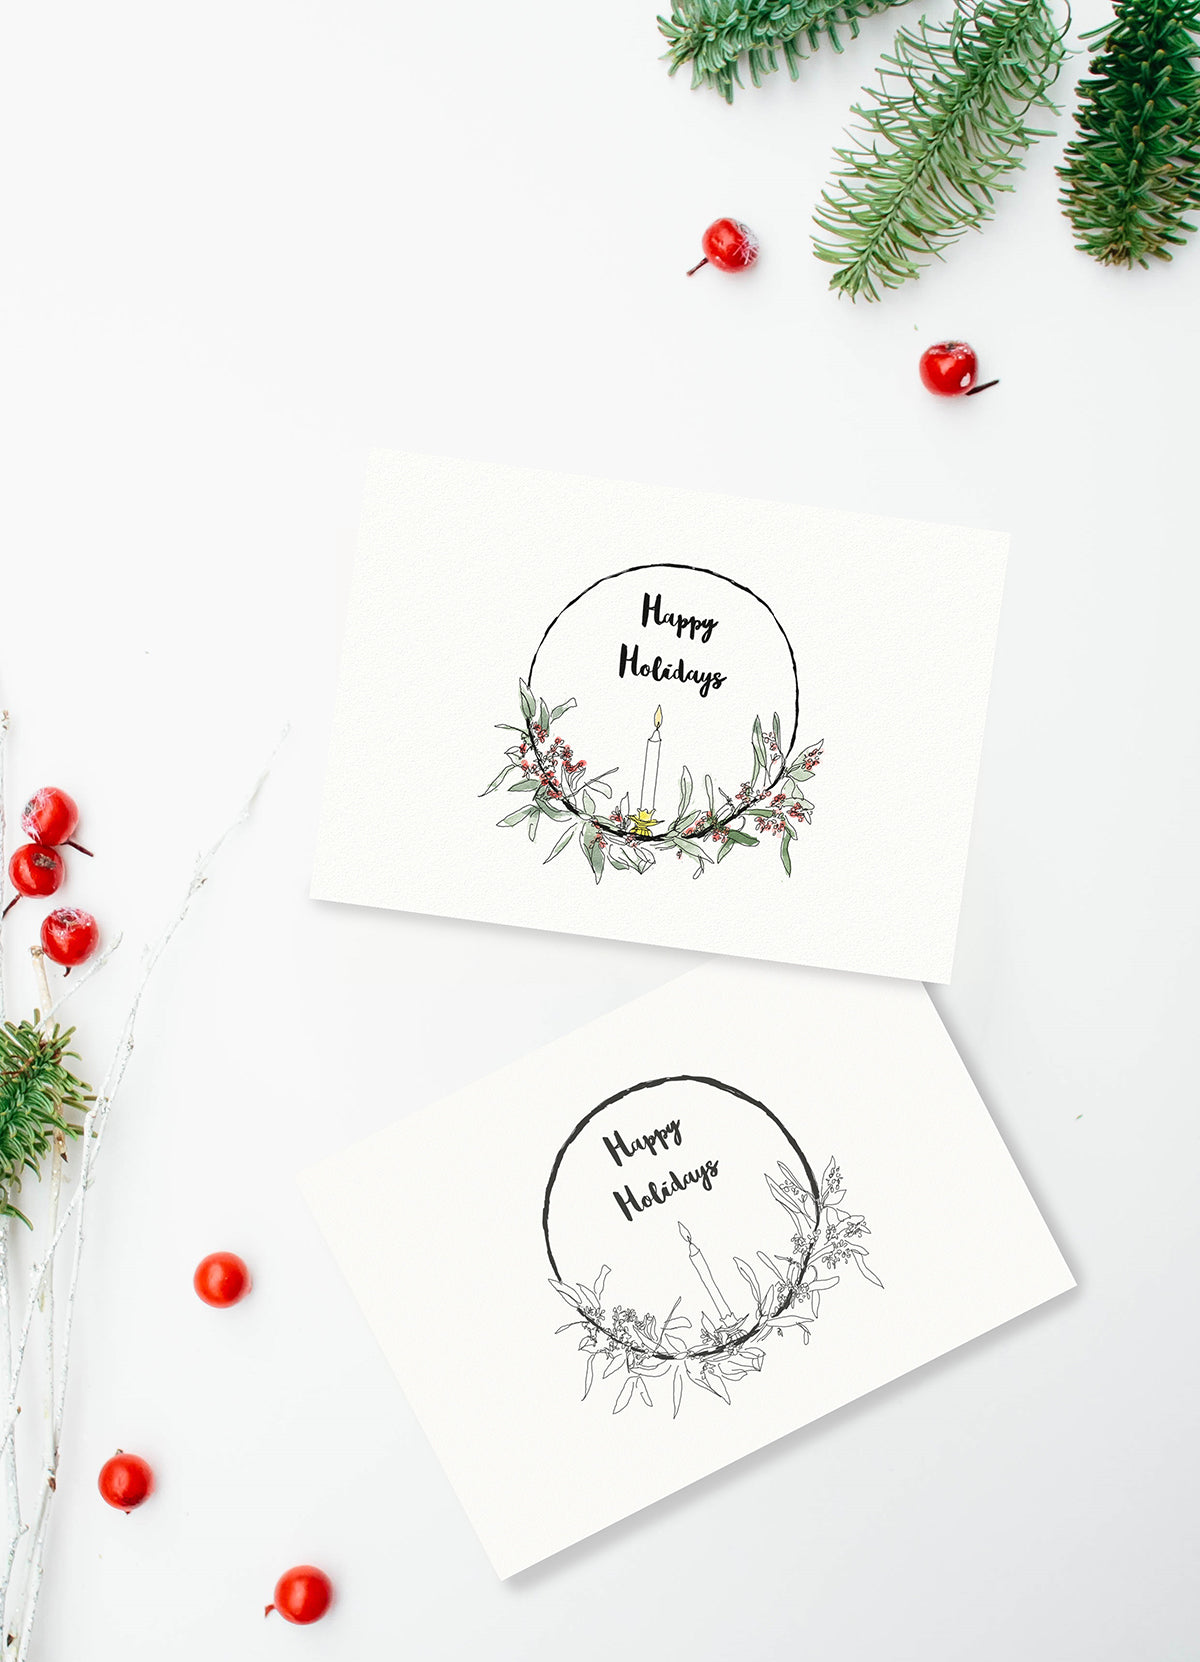 Printable holiday cards from Loop Design